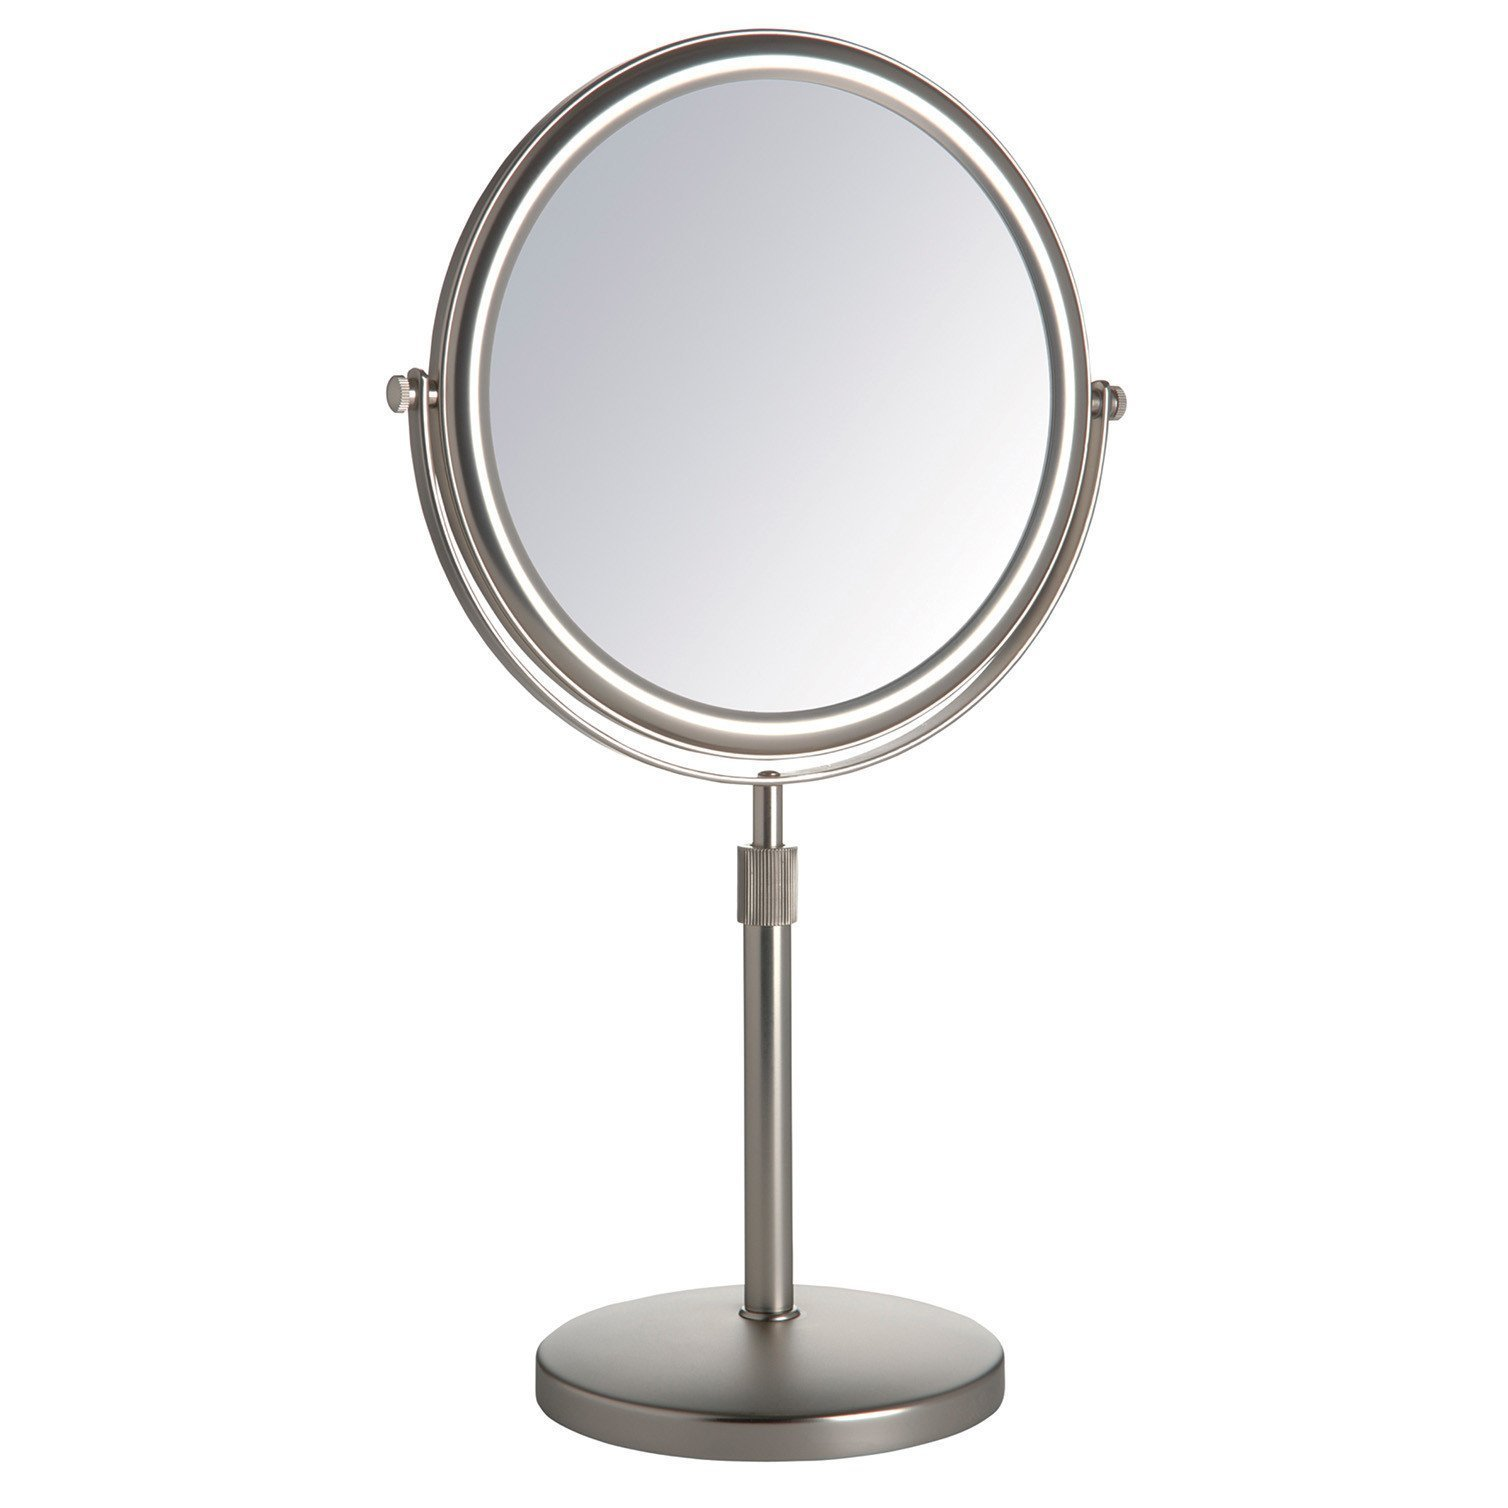 Jerdon JP4045N 9-Inch Vanity Mirror with 5x Magnification, Nickel Finish by Jerdon